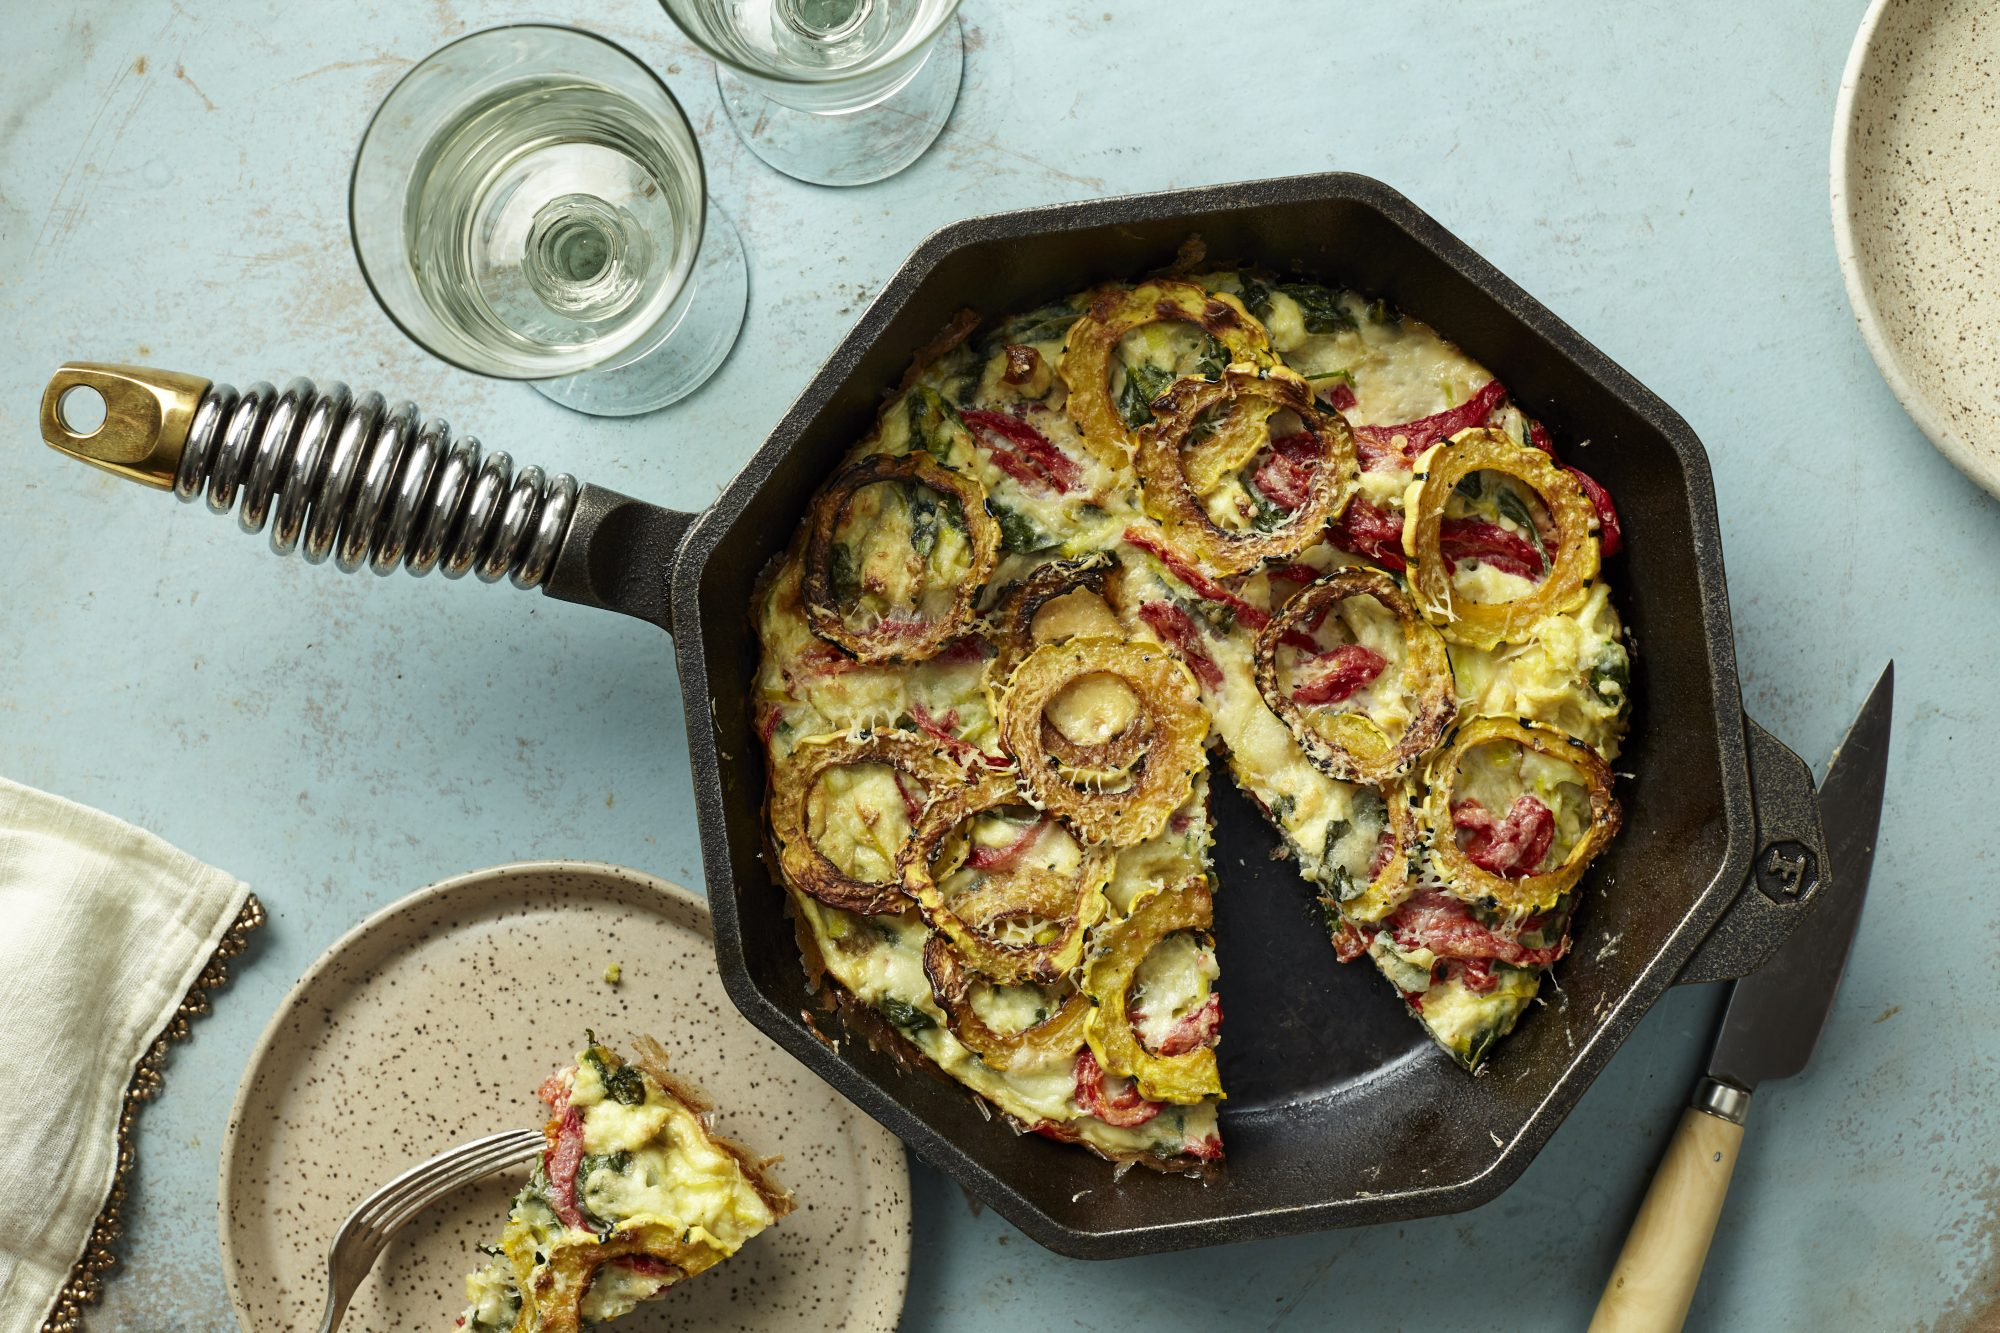 octagonal cast iron skillet holding a frittata on table